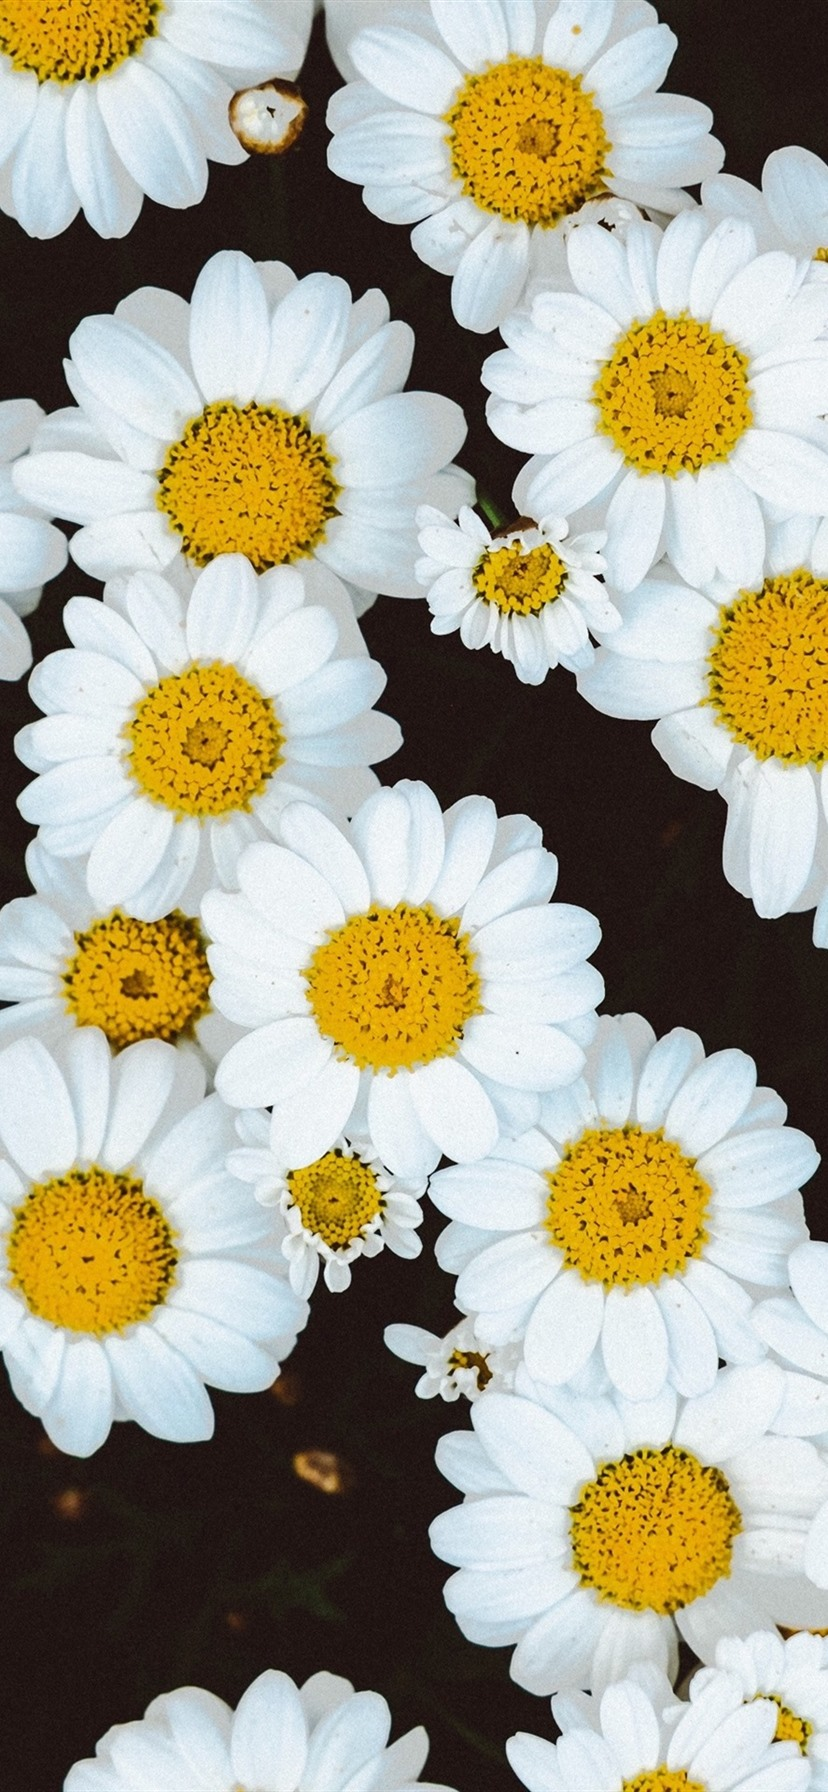 Flower Background Wallpapers Photography